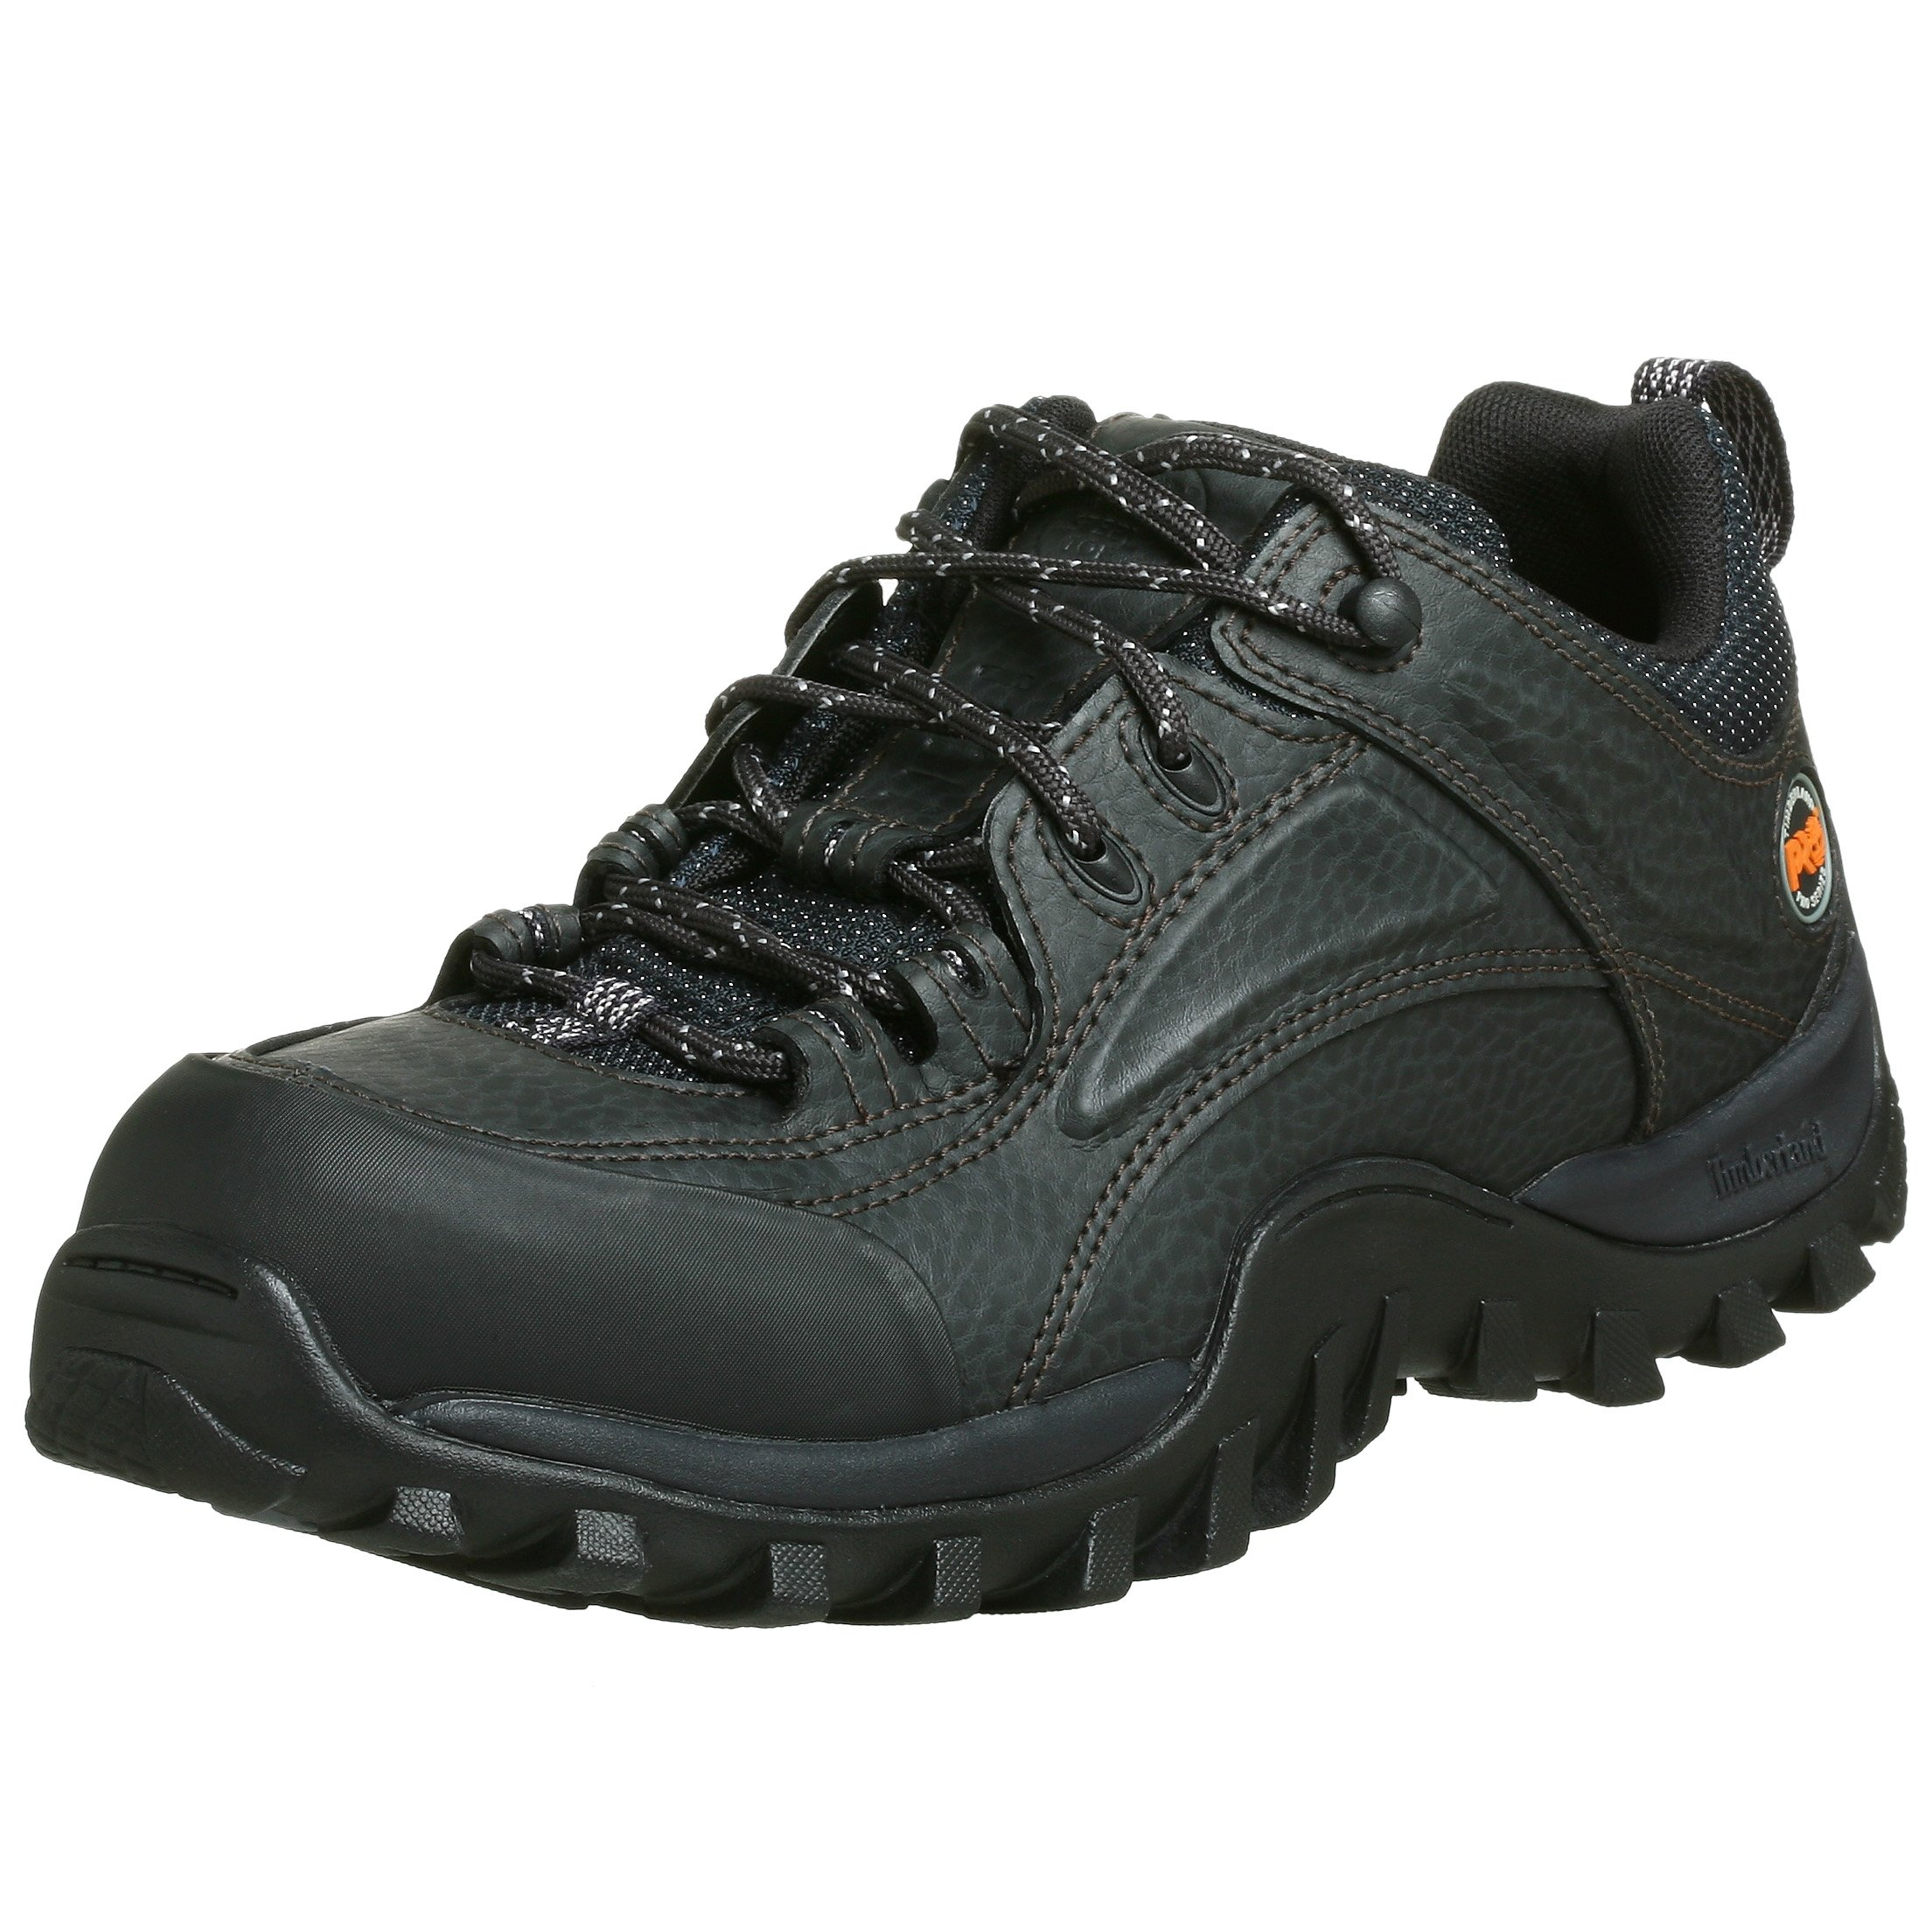 Timberland PRO Men's 40008 Mudsill Low Steel-Toe Lace-Up,Black,12 W